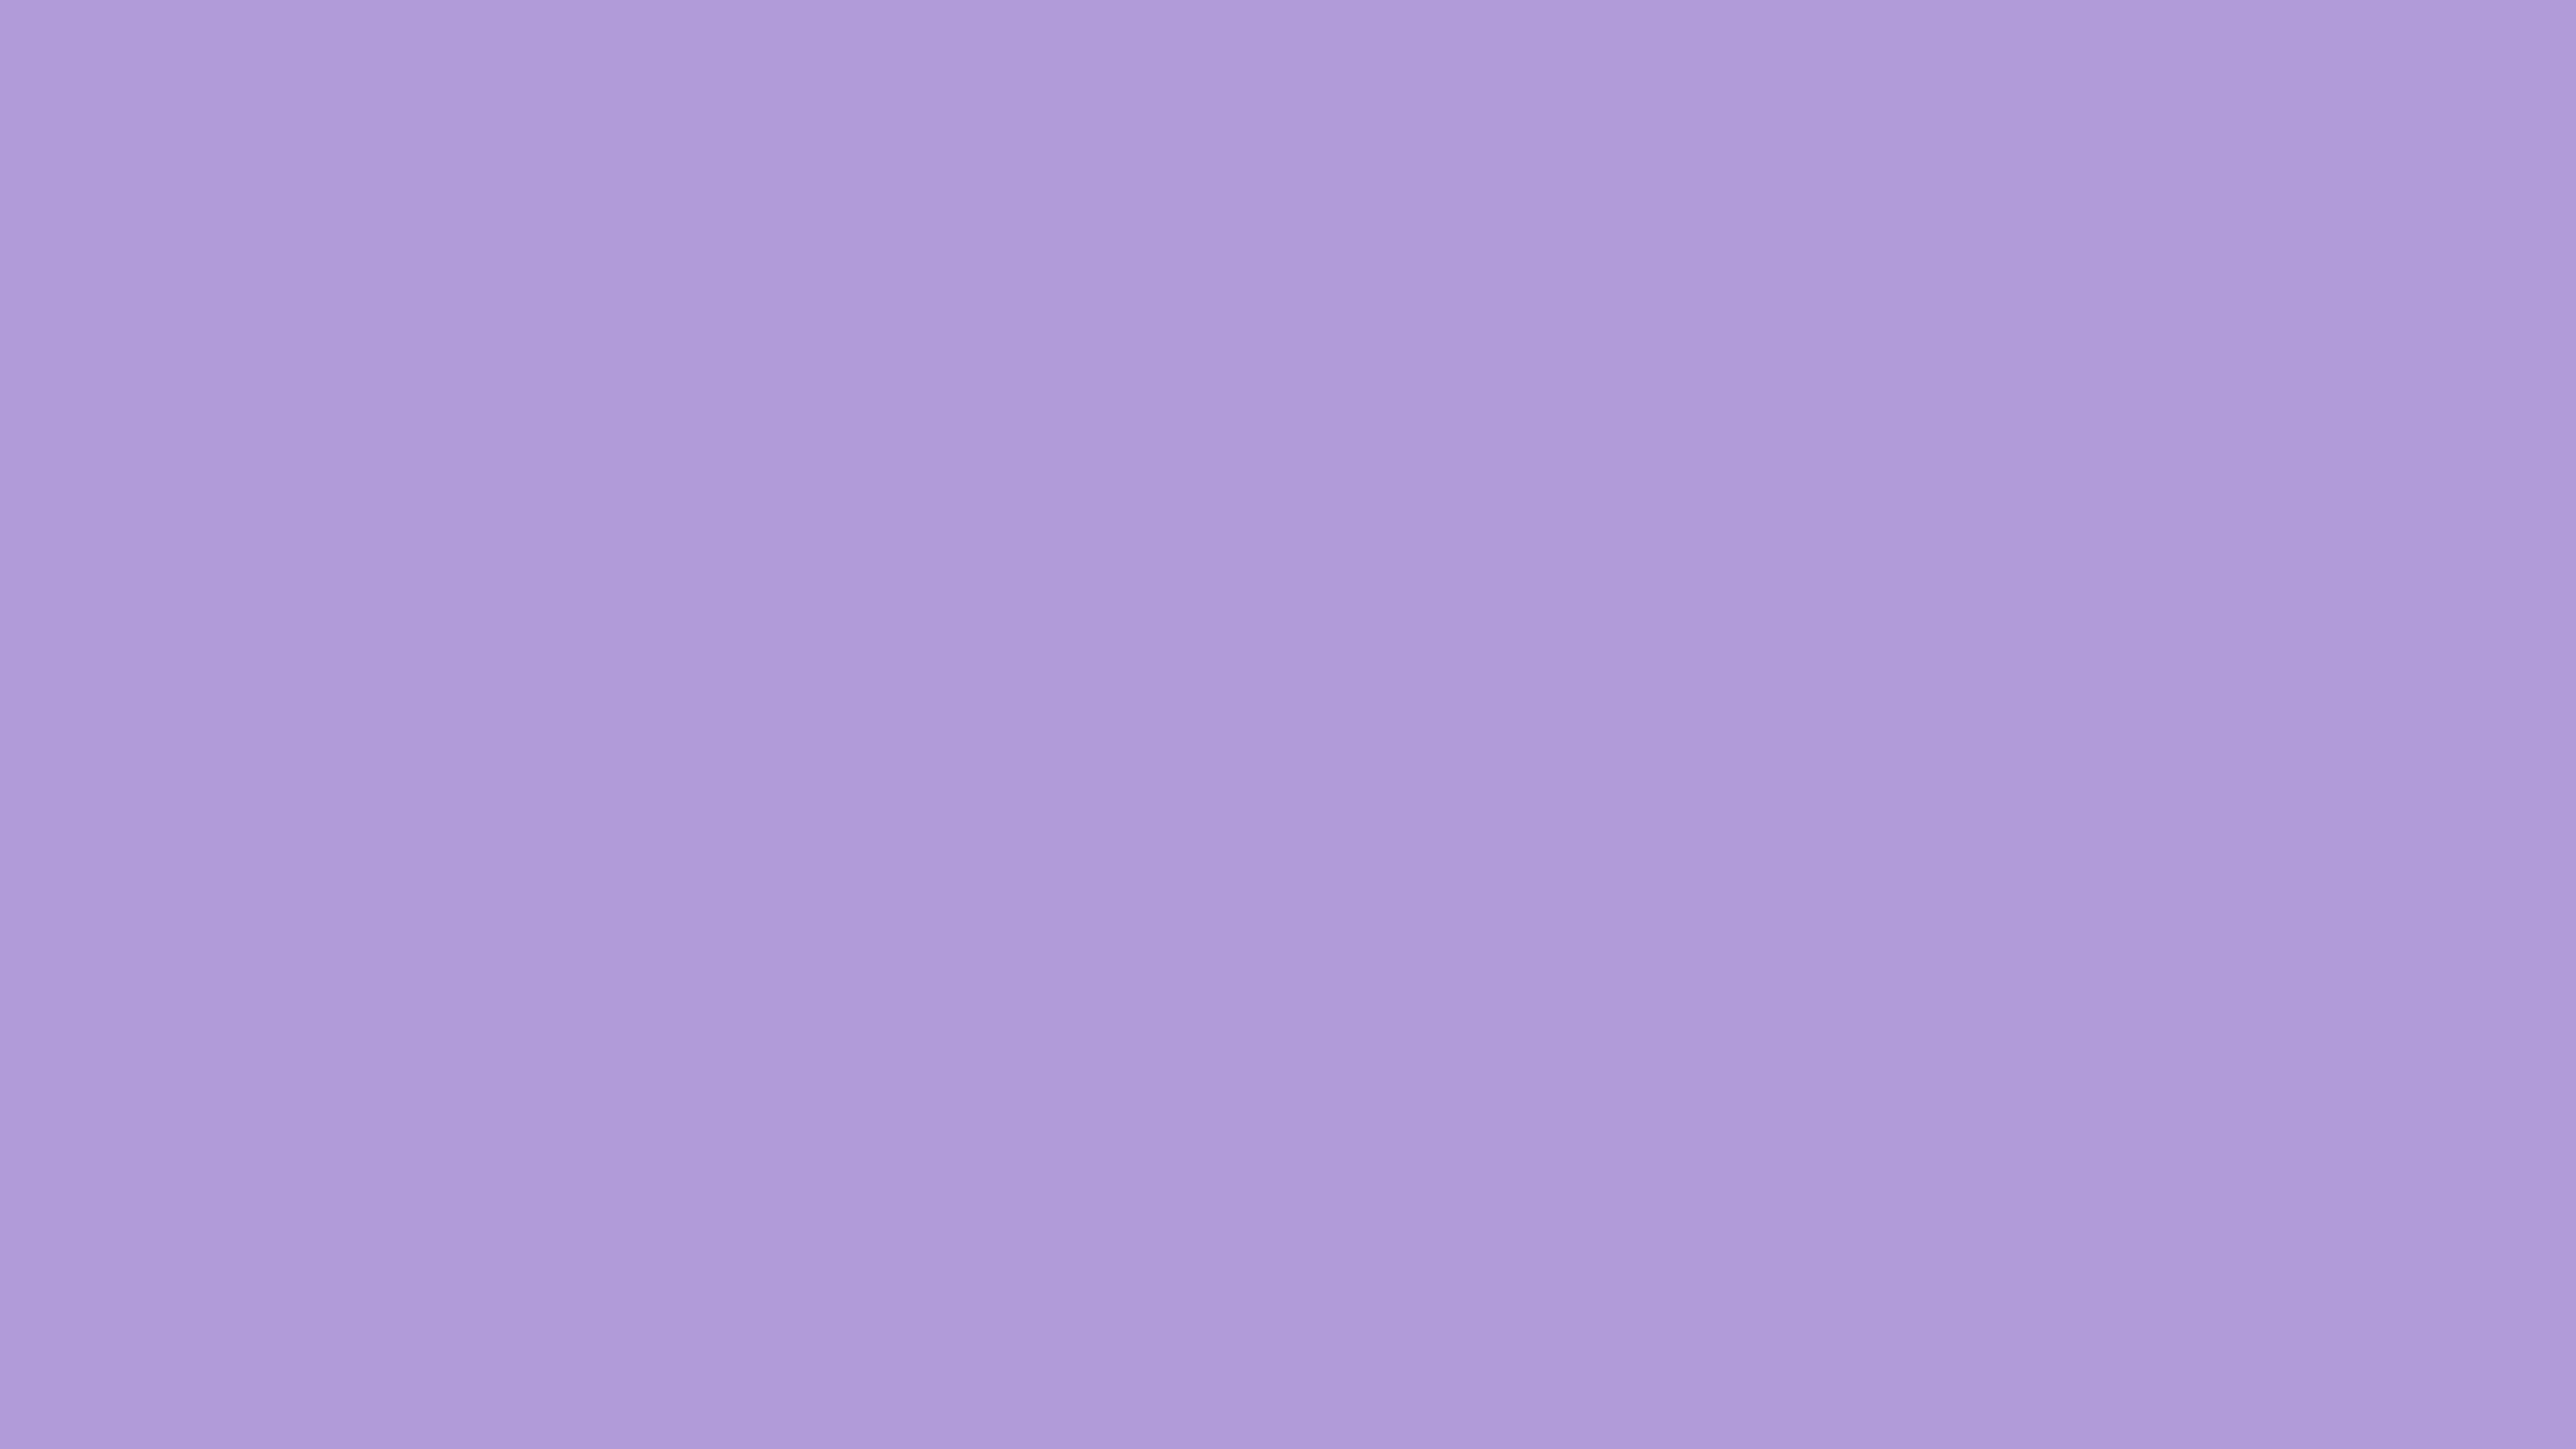 4096x2304 Light Pastel Purple Solid Color Background